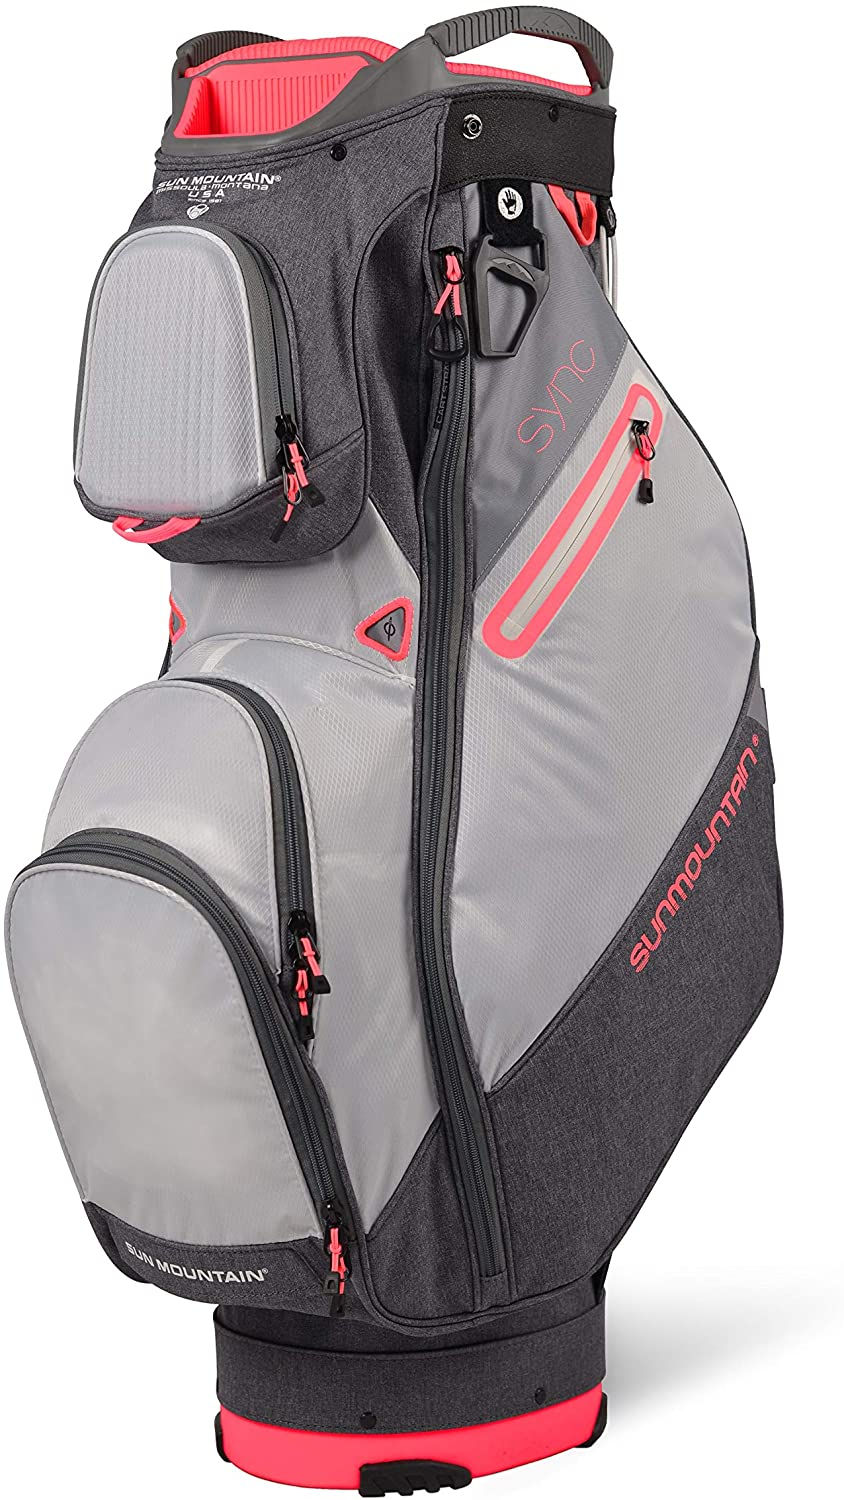 Women's Sync 2021 Golf Cart Bag On Review